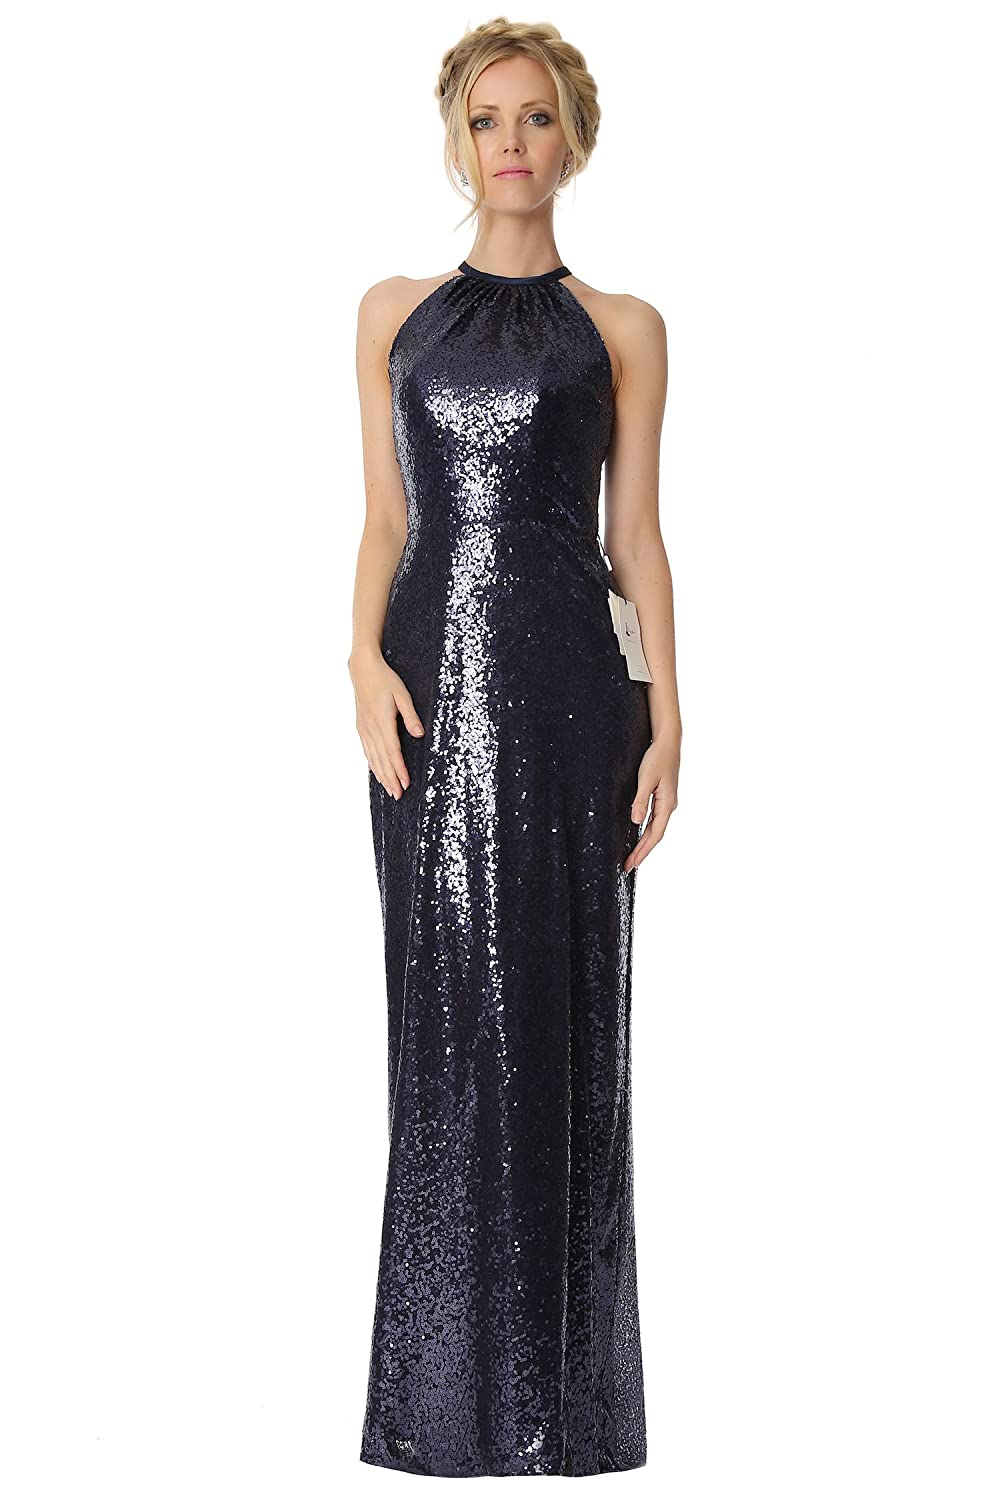 SEXYHER Sequinned Covered Halter Neckline Bridesmaids Formal Evening Dress -EDJ1812